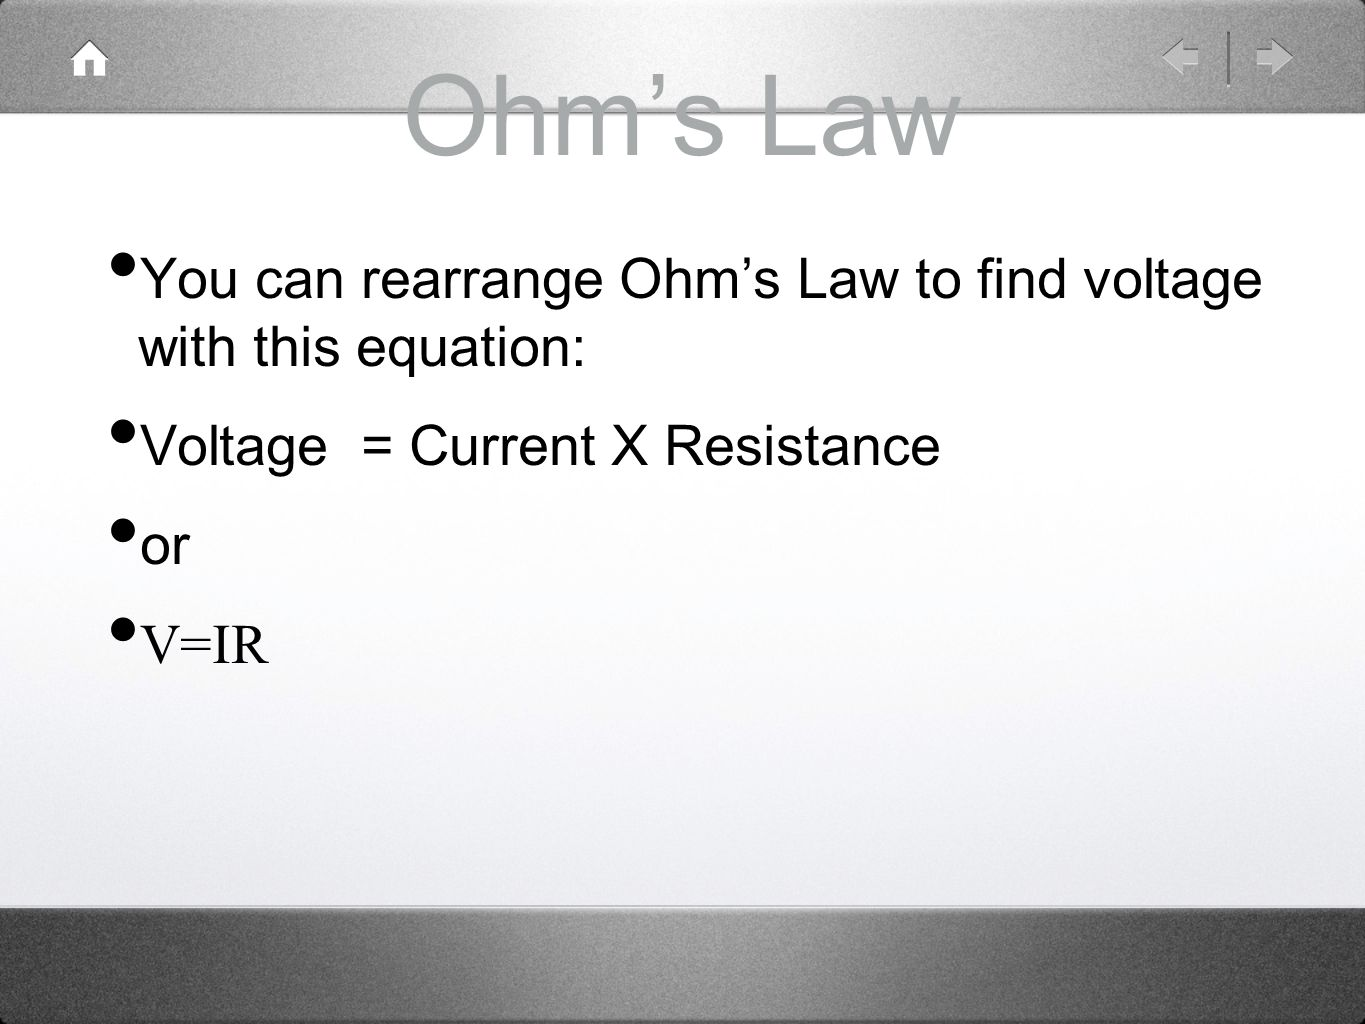 Ohm's Law You can rearrange Ohm's Law to find voltage with this equation: Voltage = Current X Resistance.